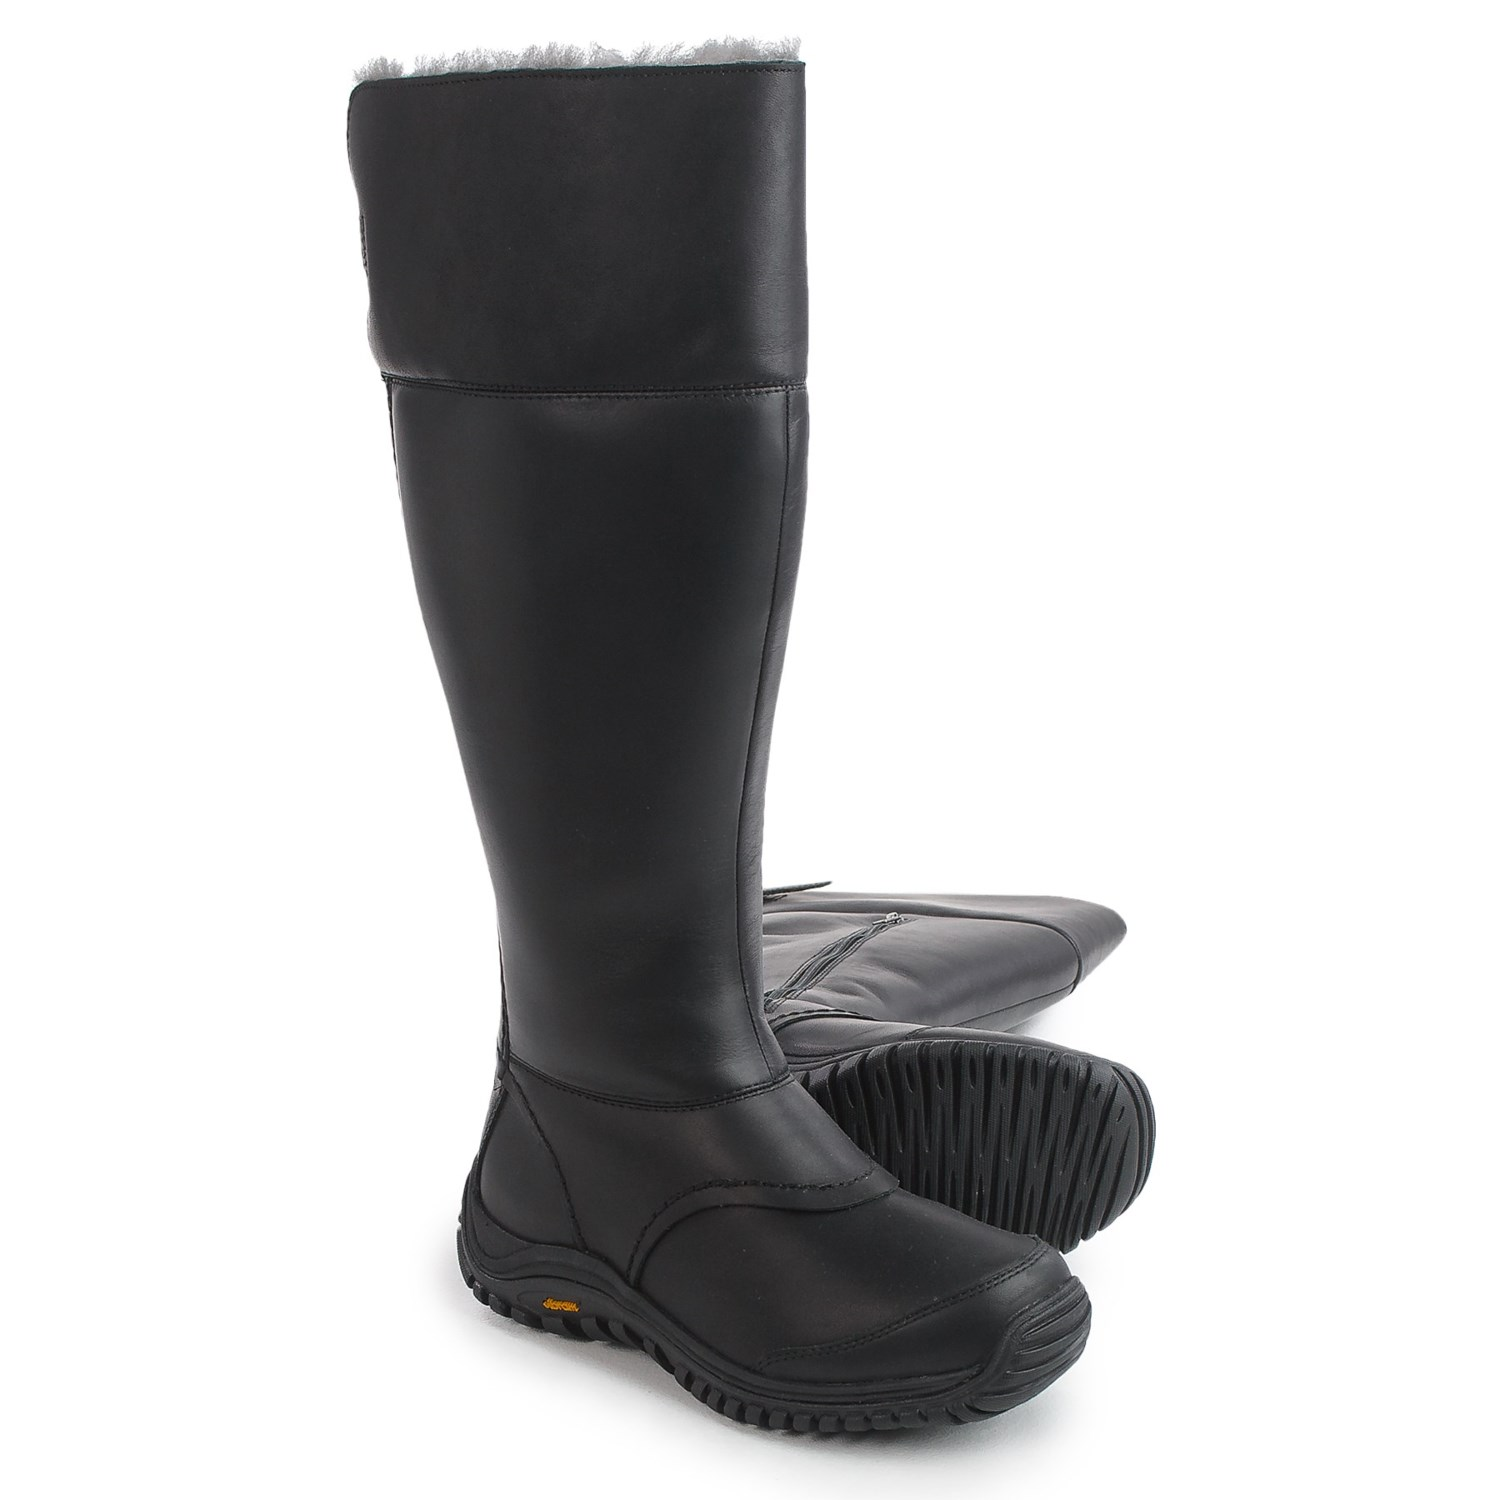 5f05626ceaf UGG® Australia Miko Boots - Waterproof, Leather (For Women)